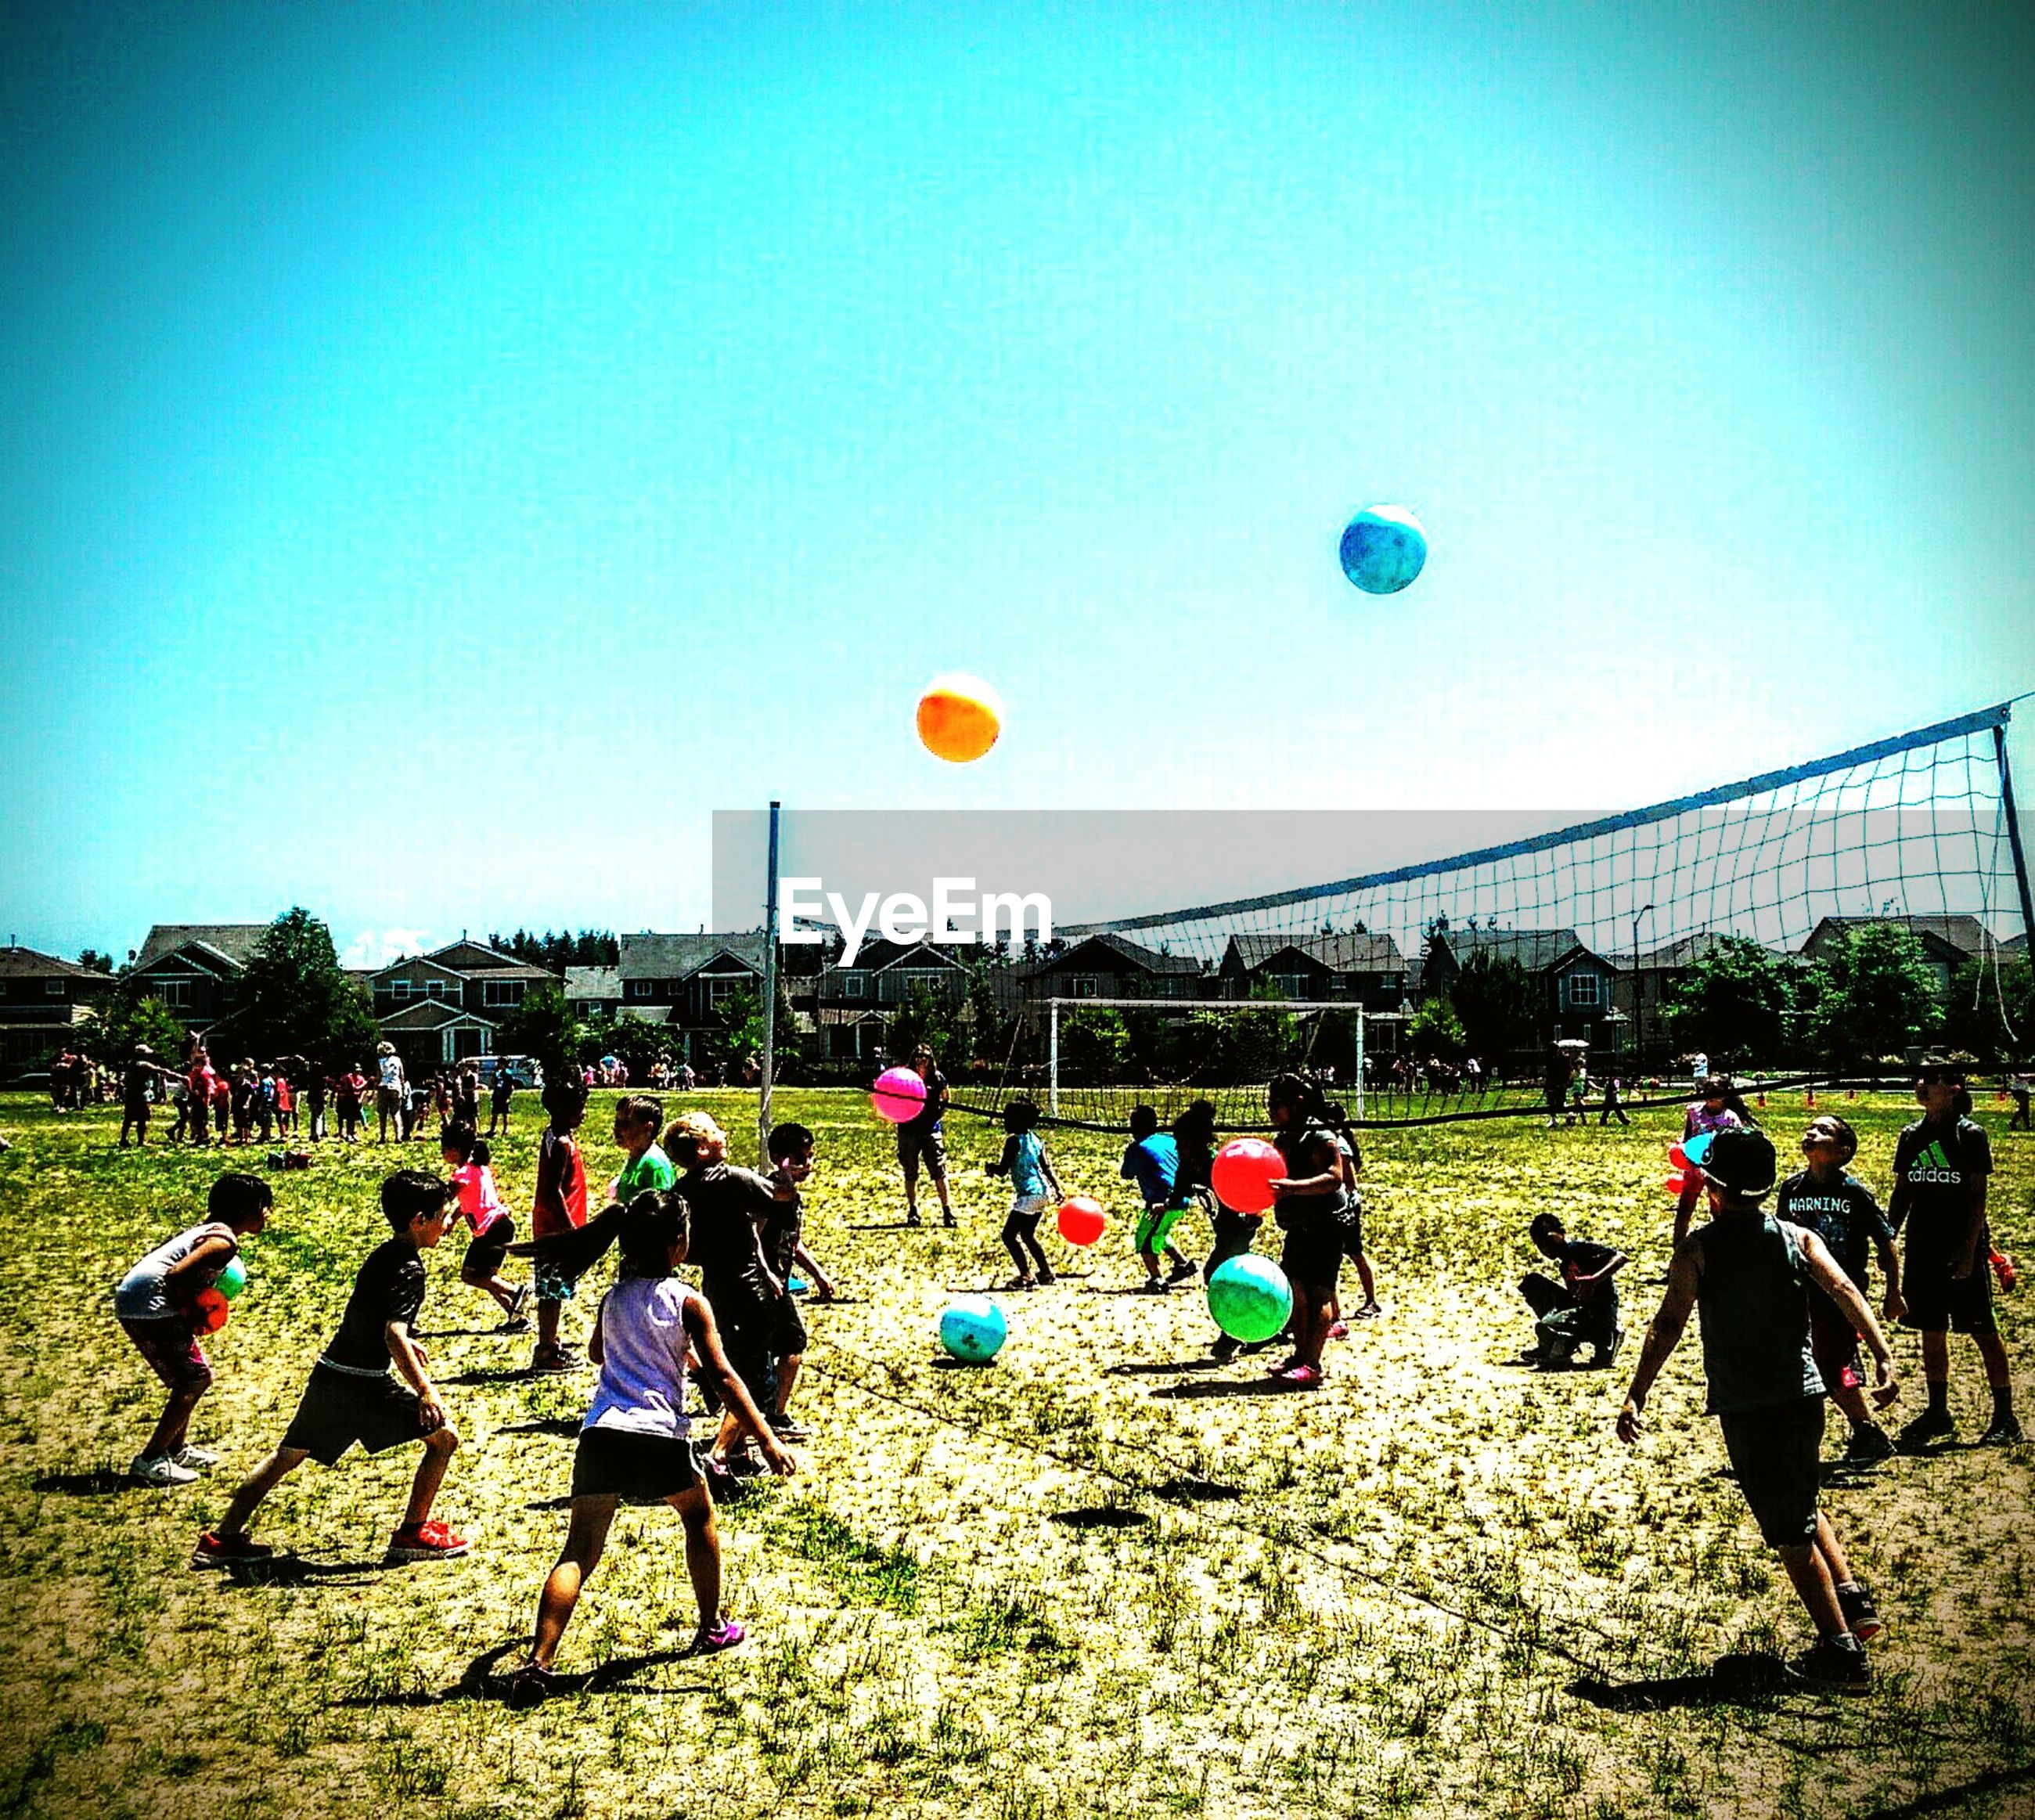 mid-air, playing, real people, large group of people, sport, ball, soccer, outdoors, skill, day, men, leisure activity, sky, playing field, clear sky, grass, nature, people, adult